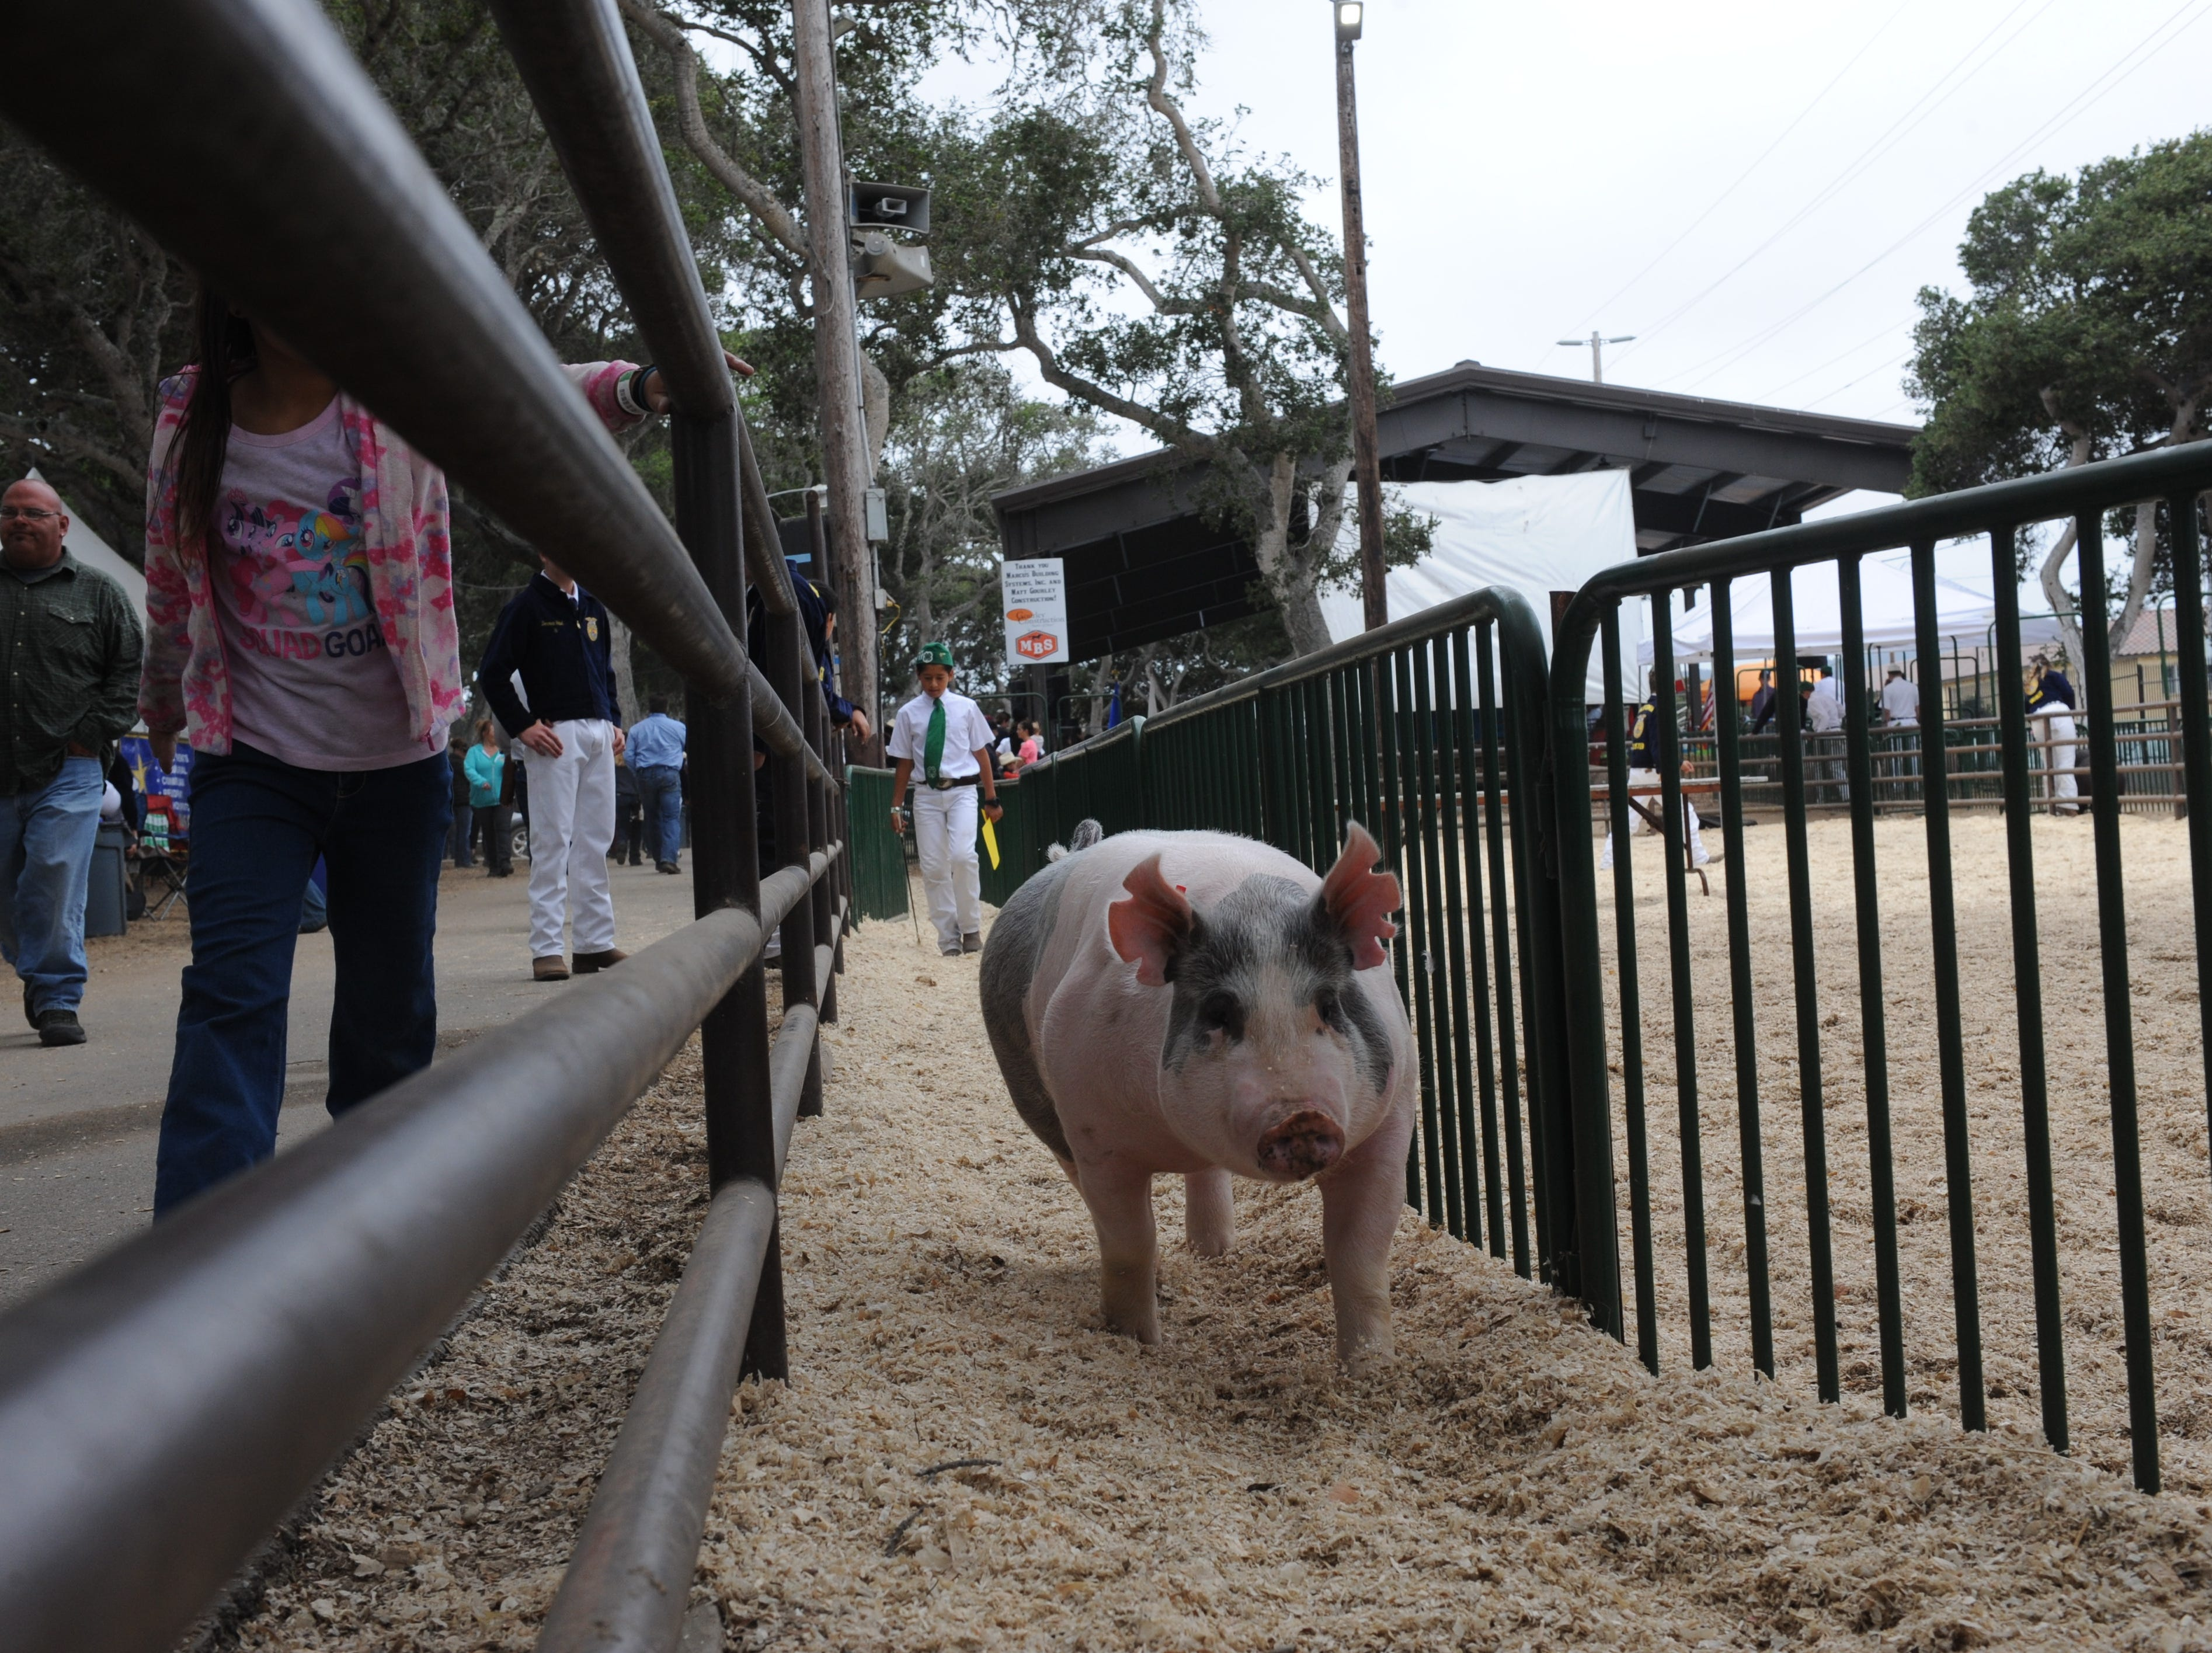 Diego Guillen, a seventh-grade student at Soledad's Main Street Middle School, walks behind his pig, Bubbles, after auction.